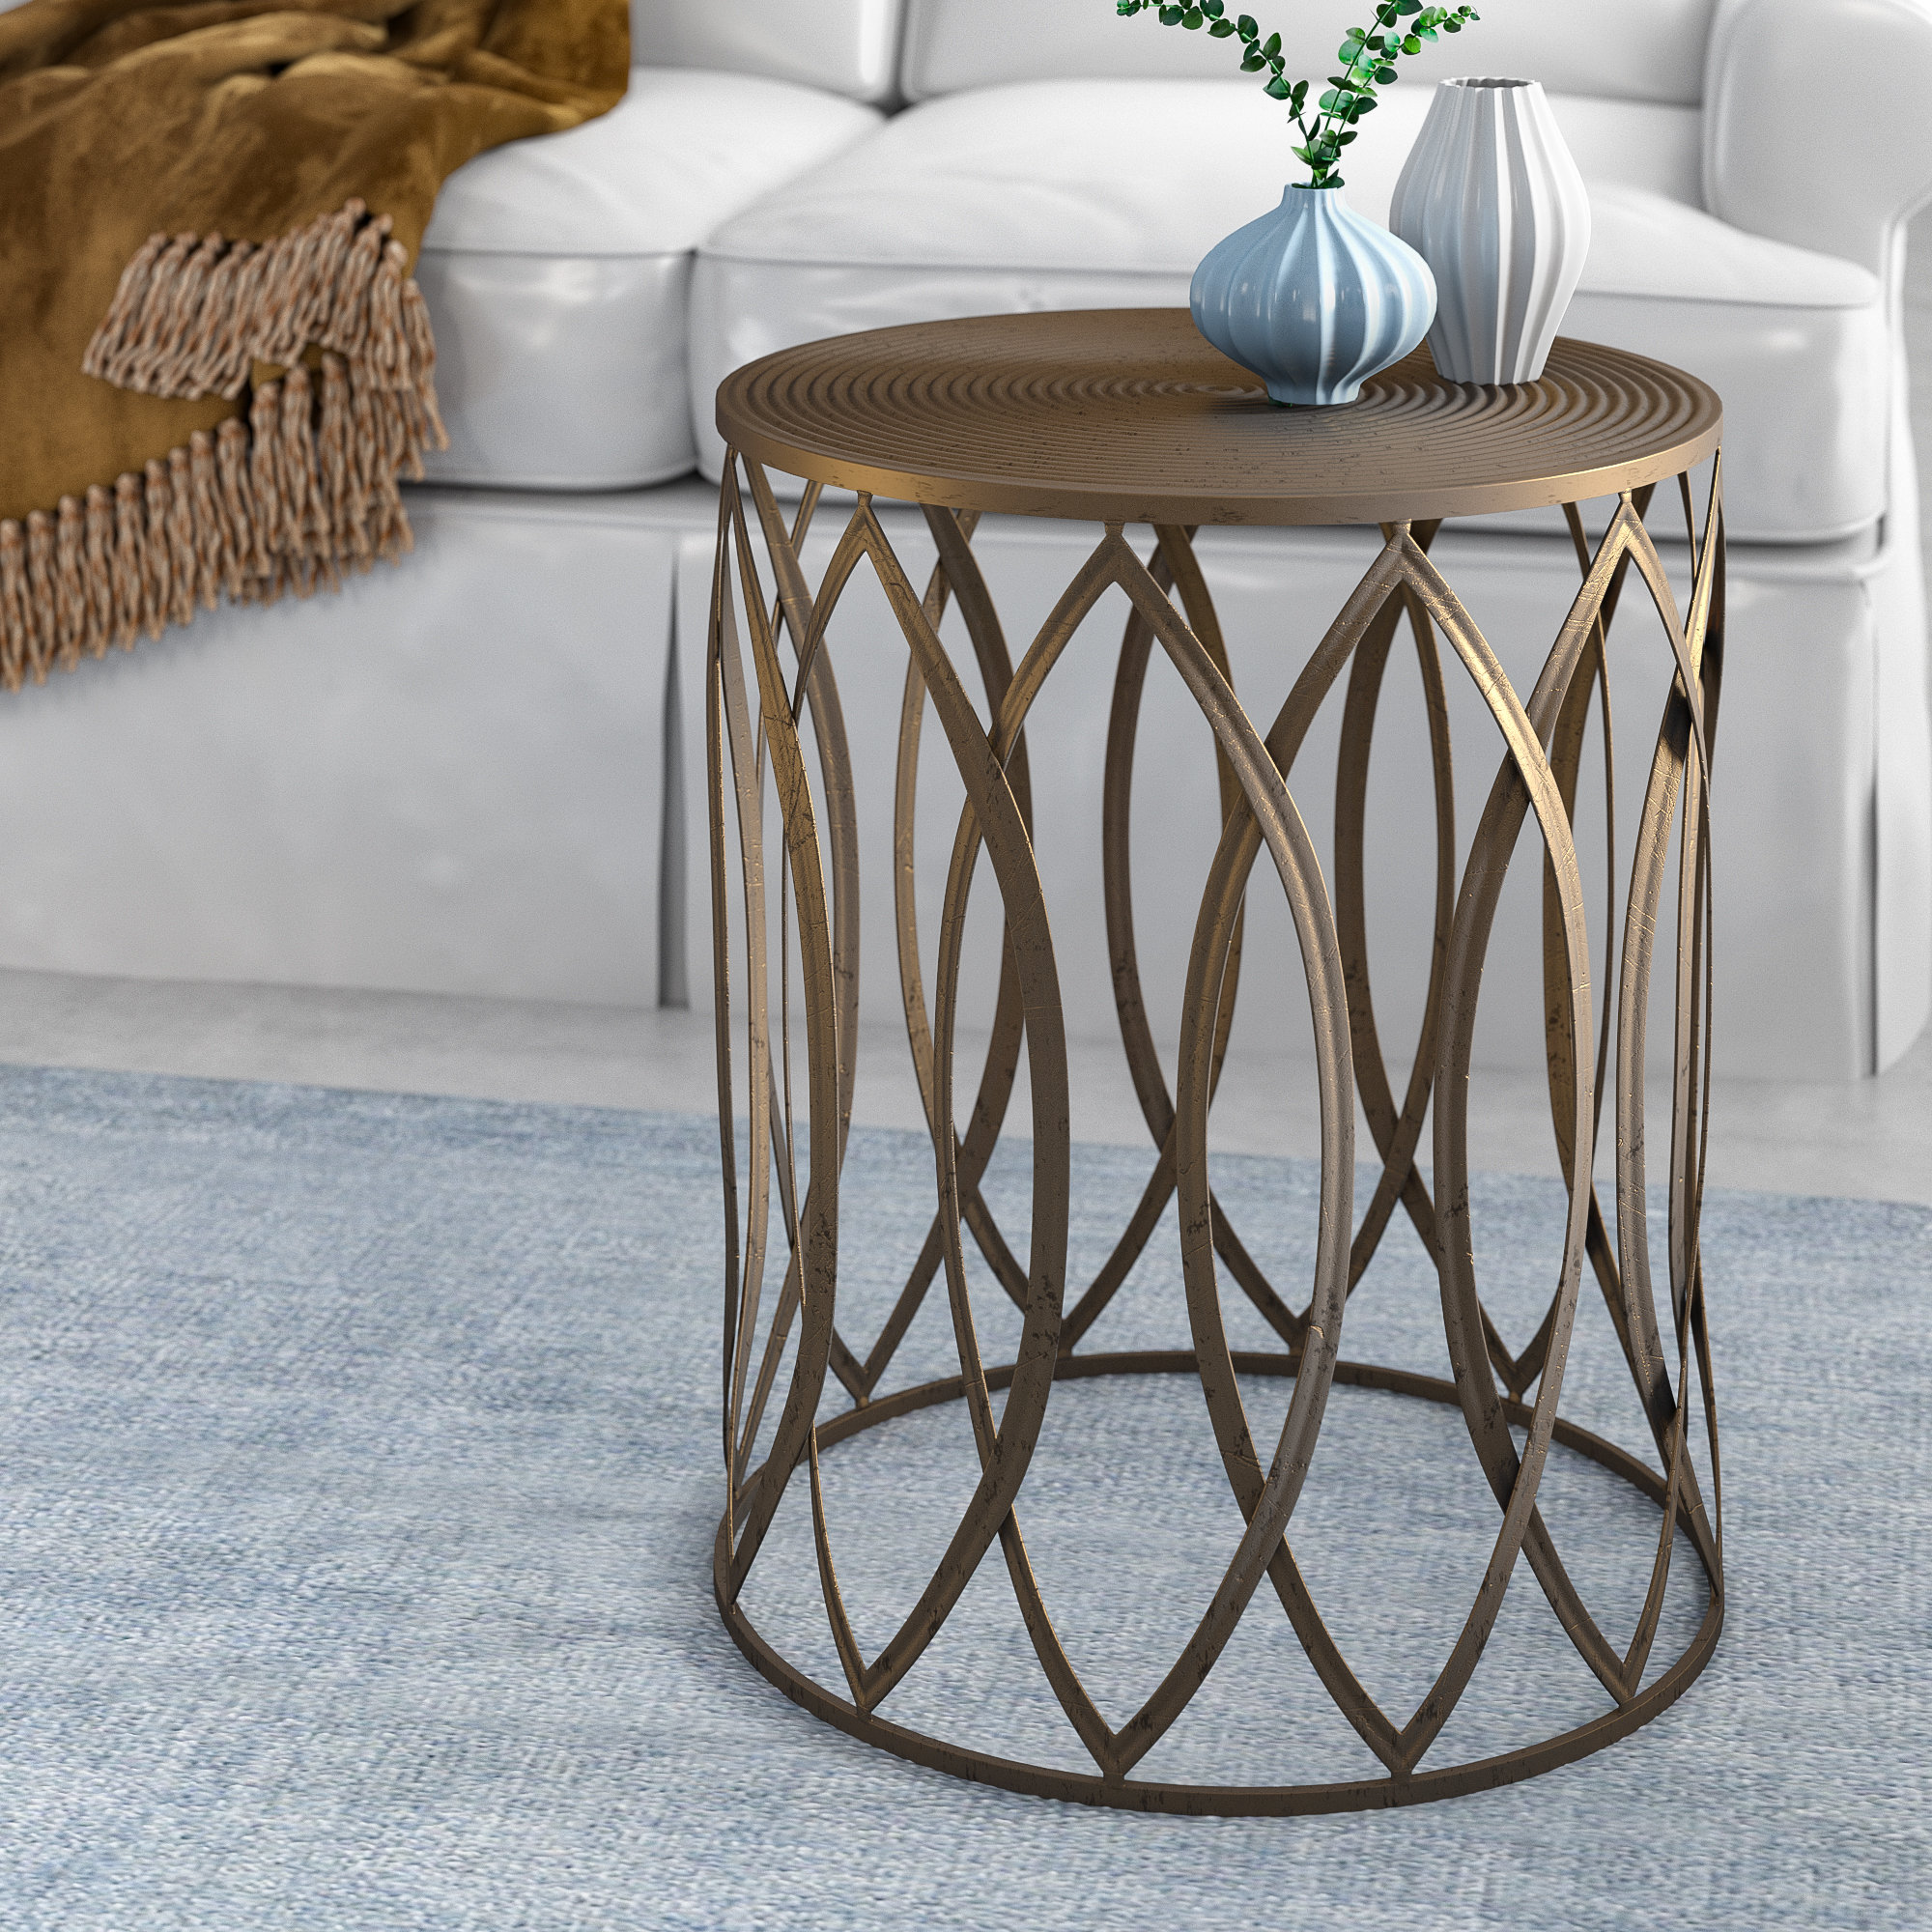 pie shaped end table stanley solar metal accent target windham furniture winsome with drawer diy square coffee green mcm side barrel indoor mat glass agate quilted runner ideas